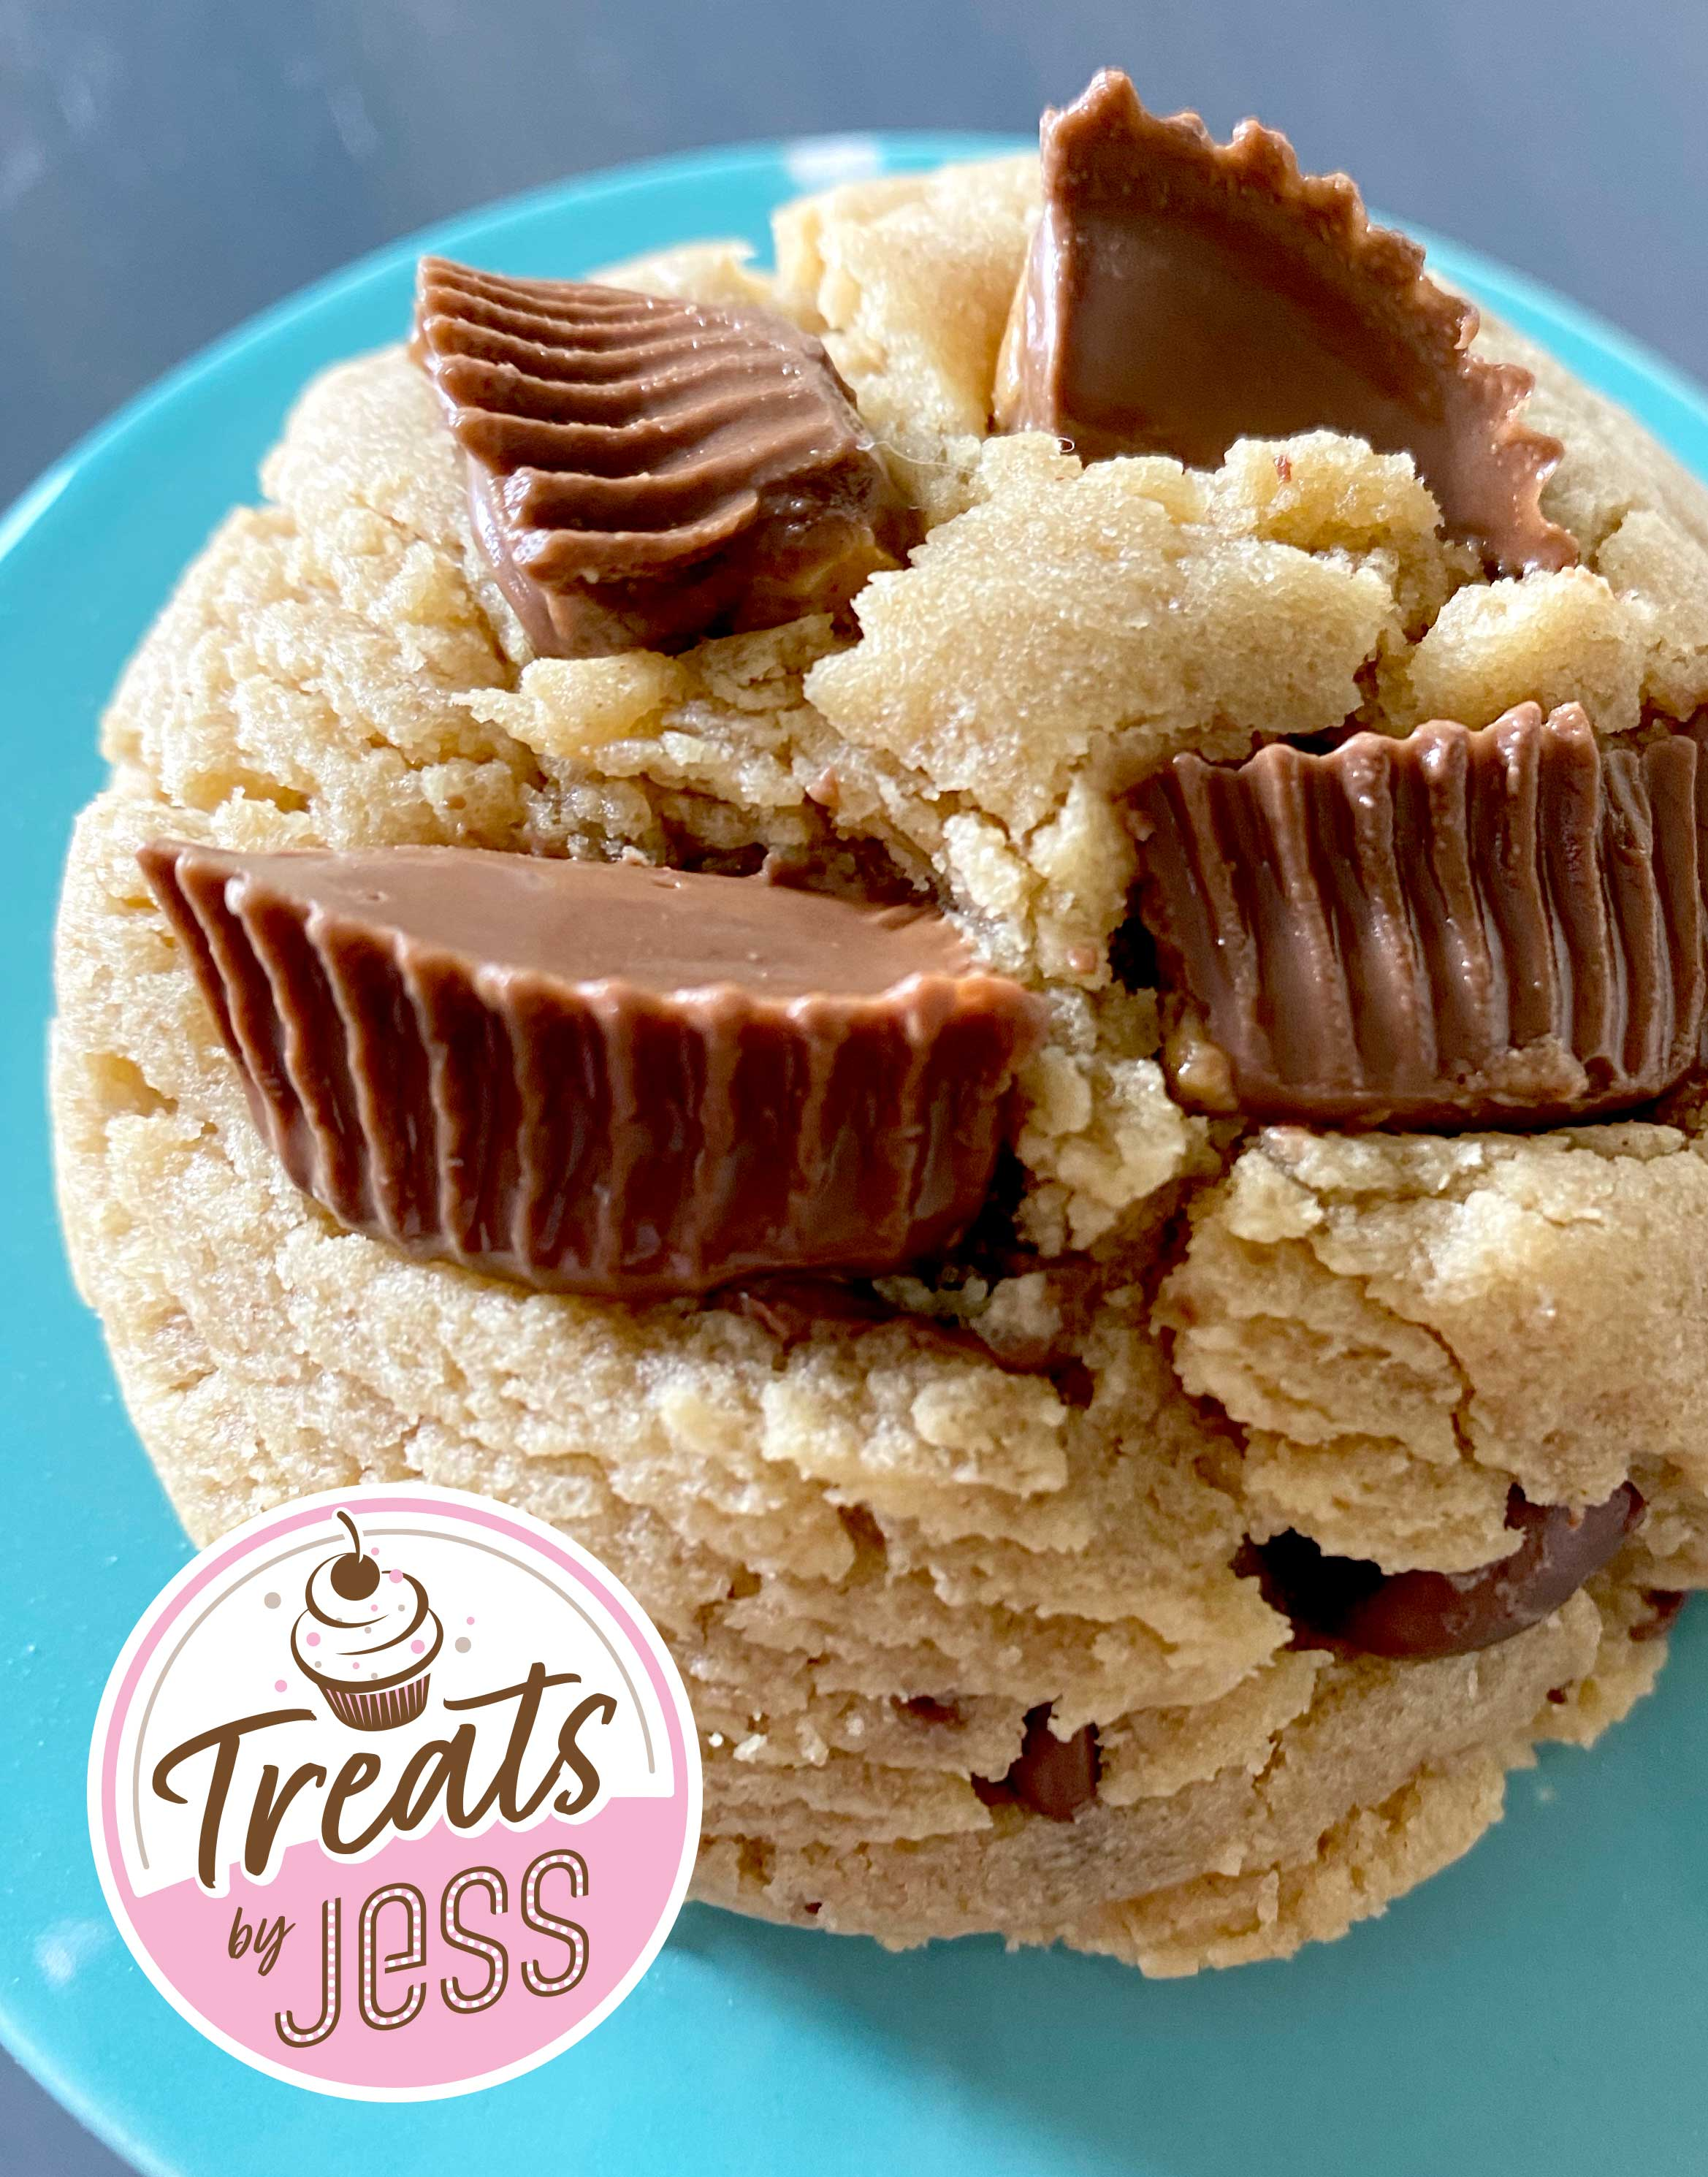 Order Treats by Jess - Chunky Reeses Cookies